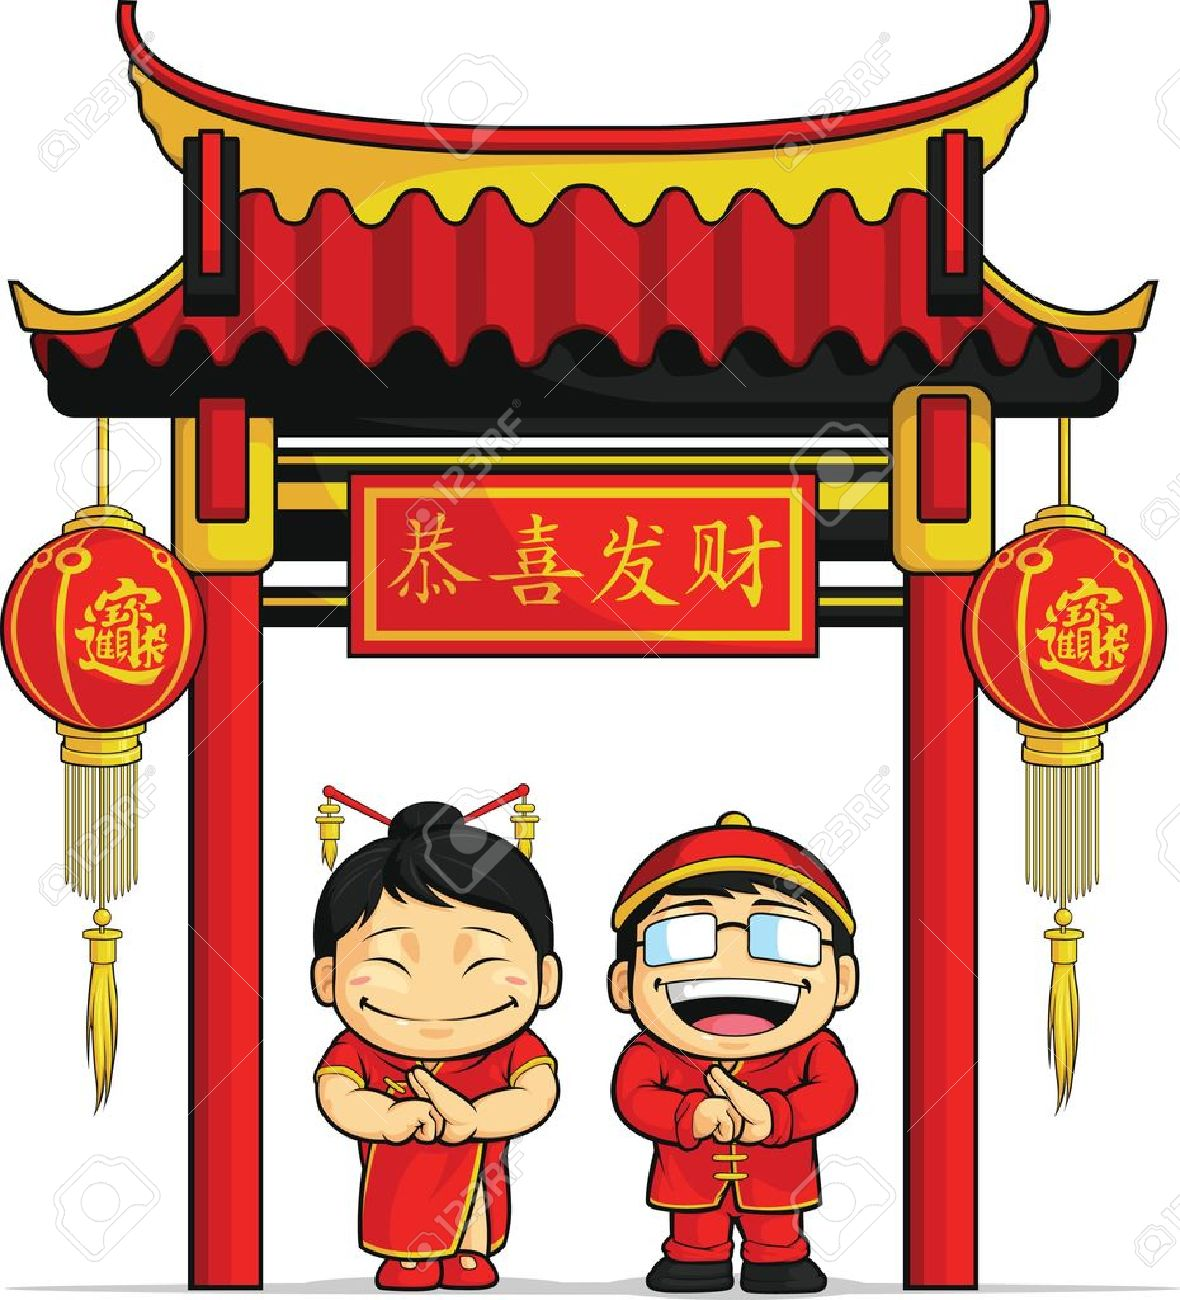 2,858 Chinese Boy Stock Vector Illustration And Royalty Free.